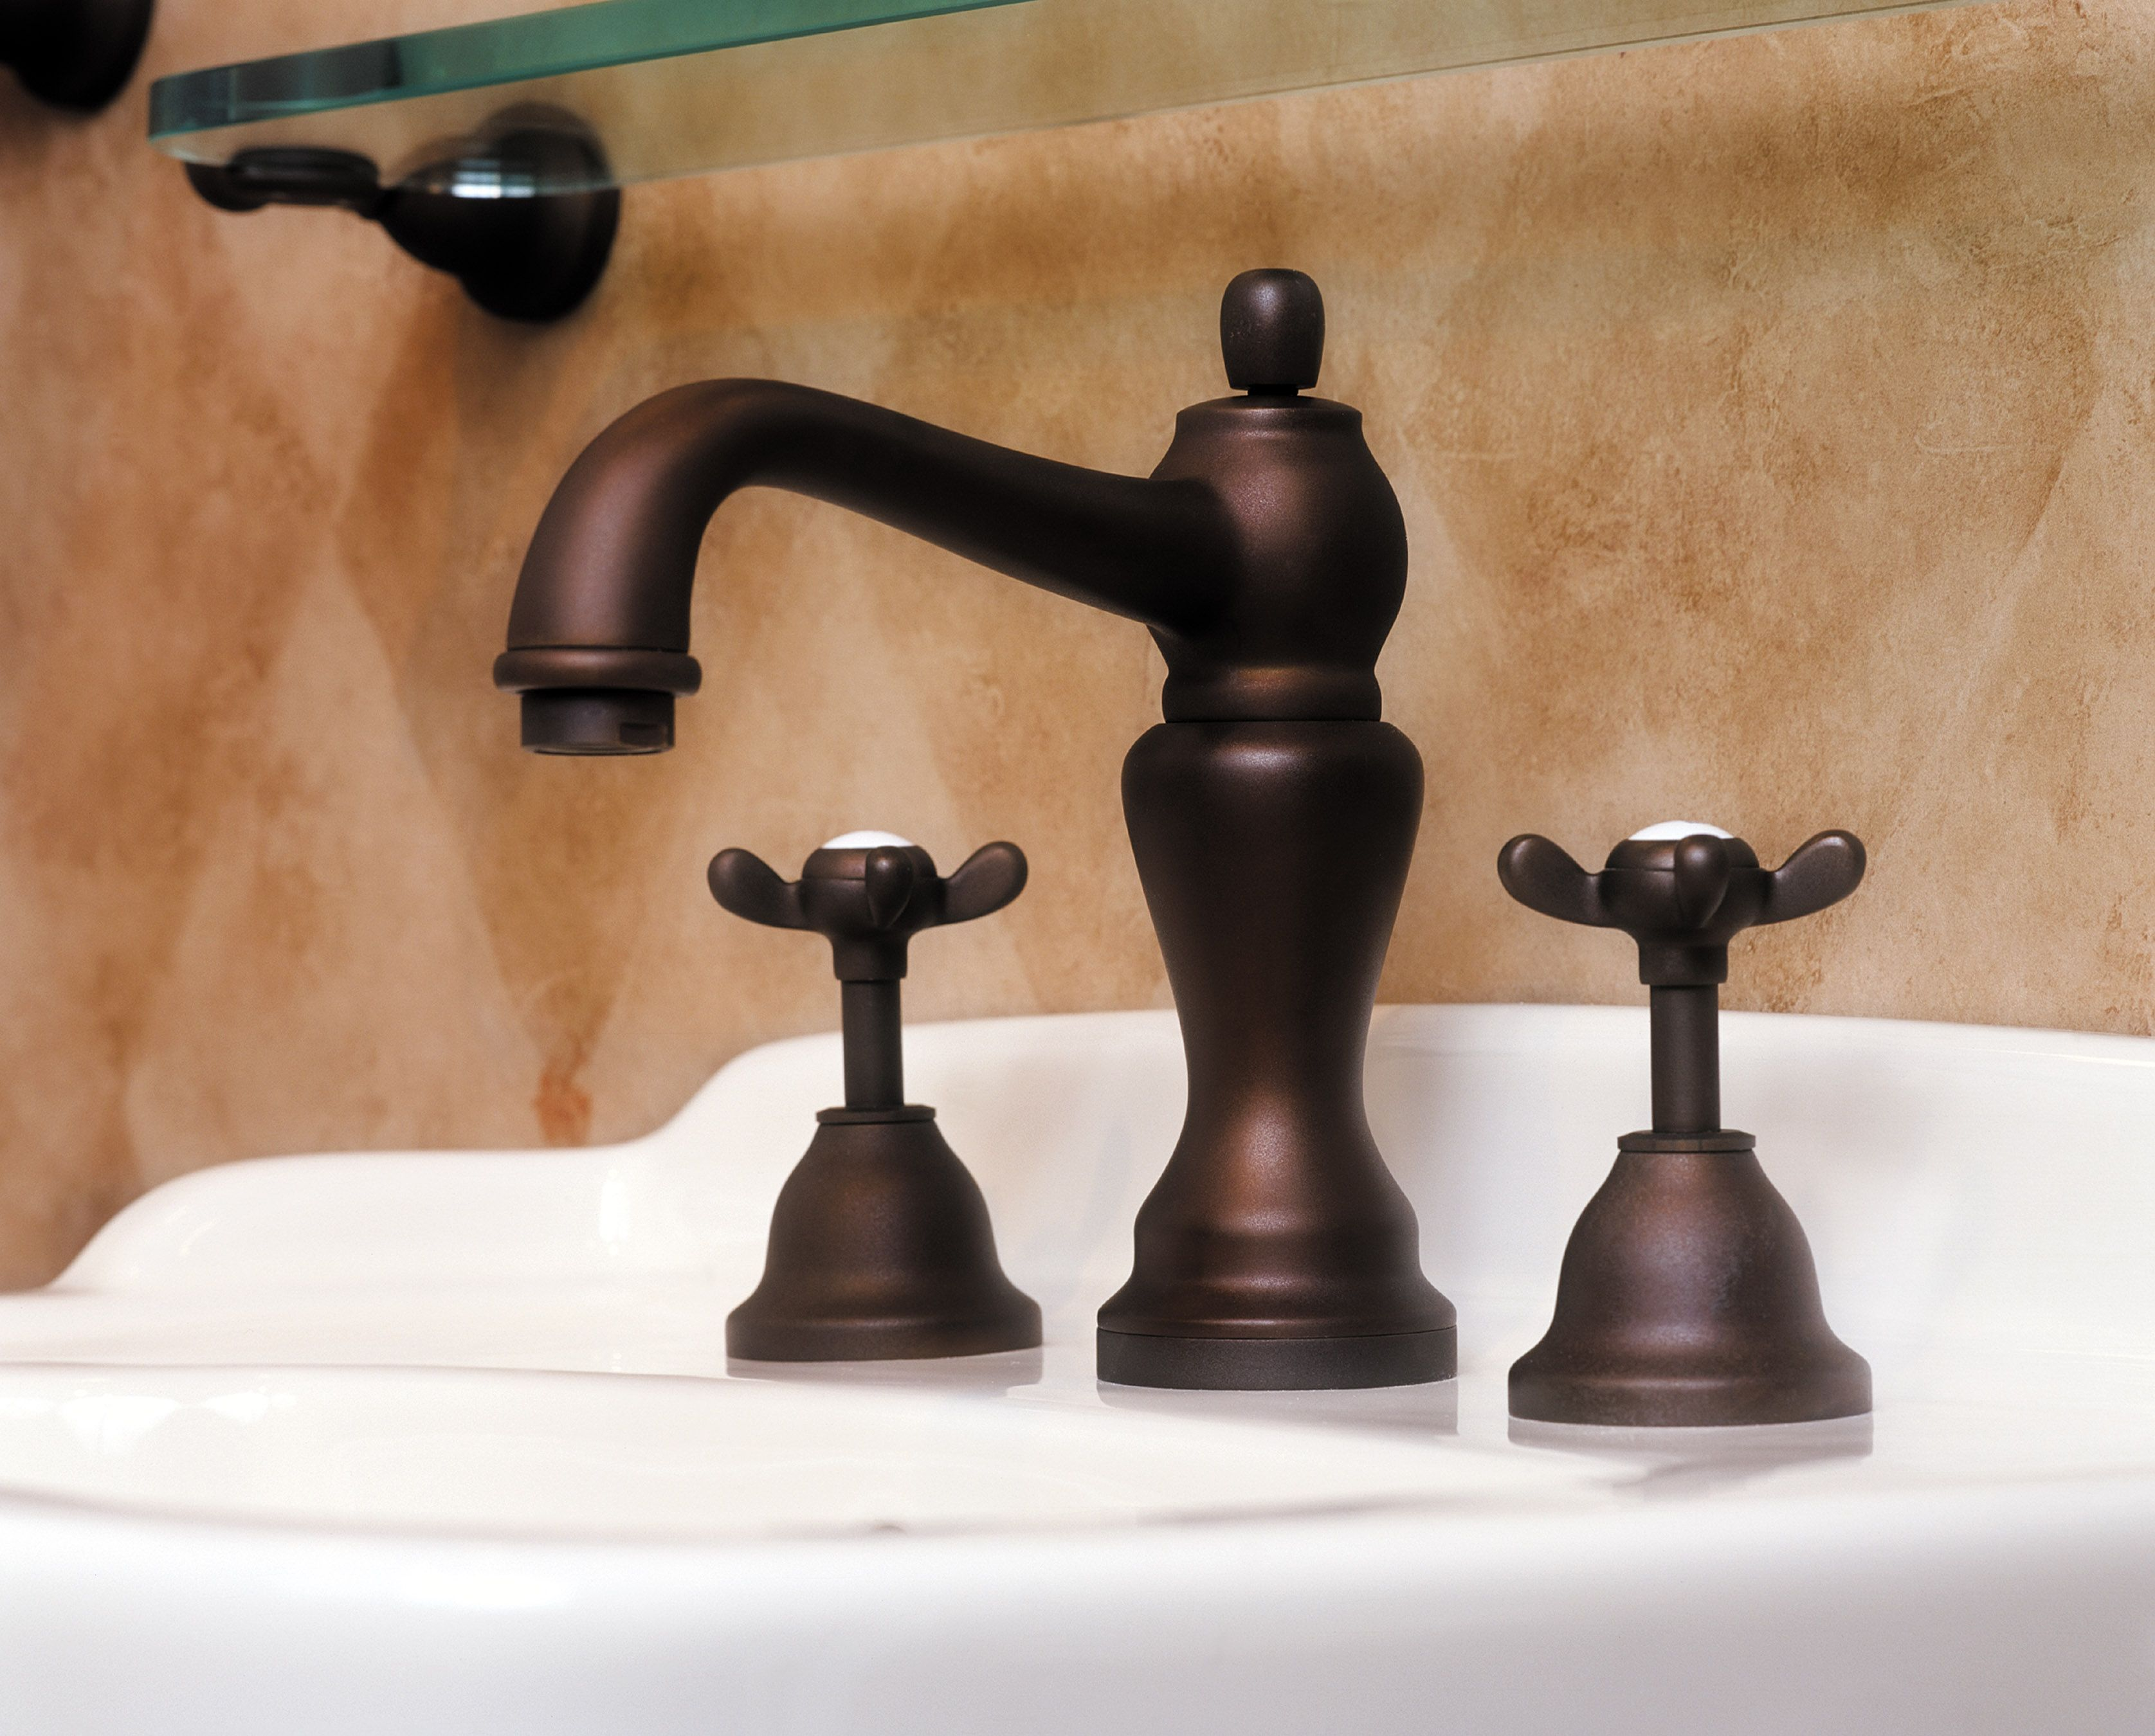 Buckingham Faucet By Watermark Designs Watermark Design Faucet Design